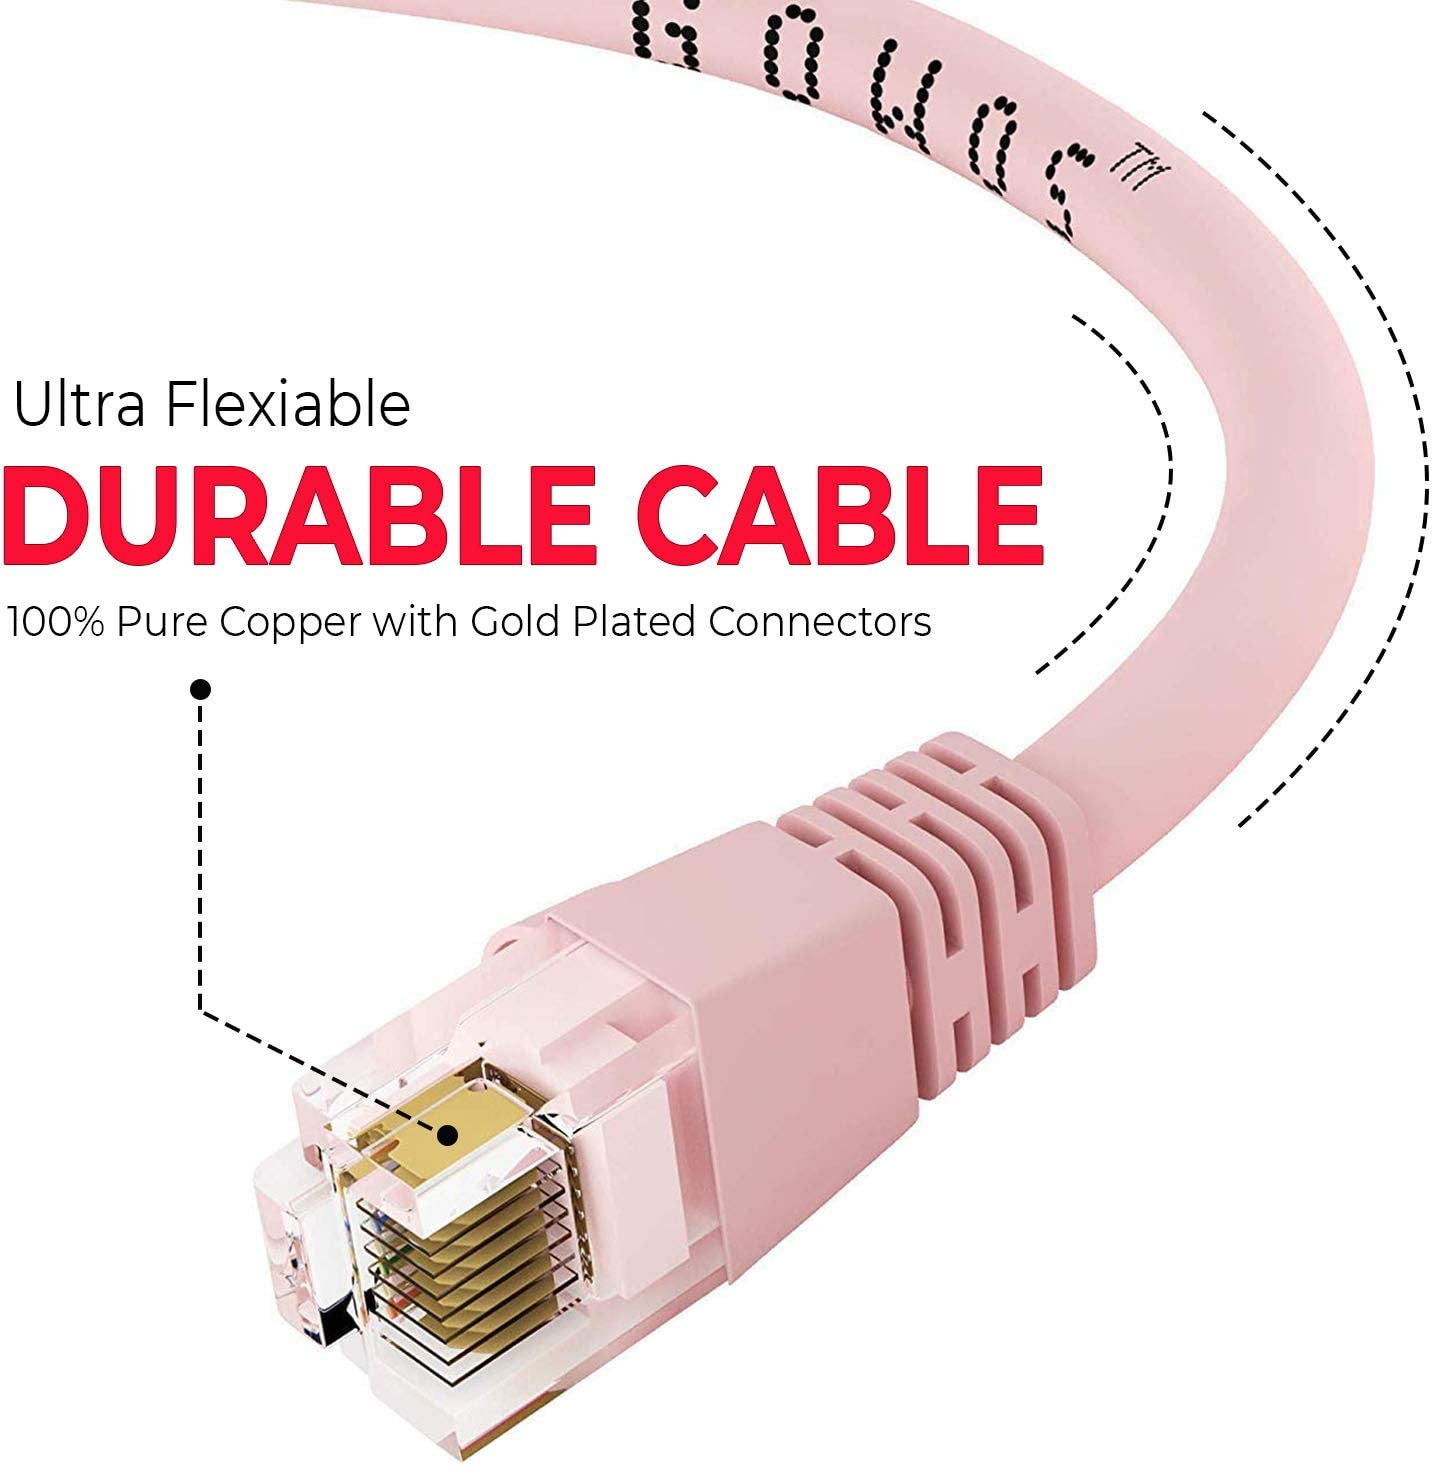 Cat5e Ethernet Cable GOWOS 50-Pack Available in 28 Lengths and 10 Colors UTP 14 Feet - Pink RJ45 10Gbps High Speed LAN Internet Patch Cord Computer Network Cable with Snagless Connector